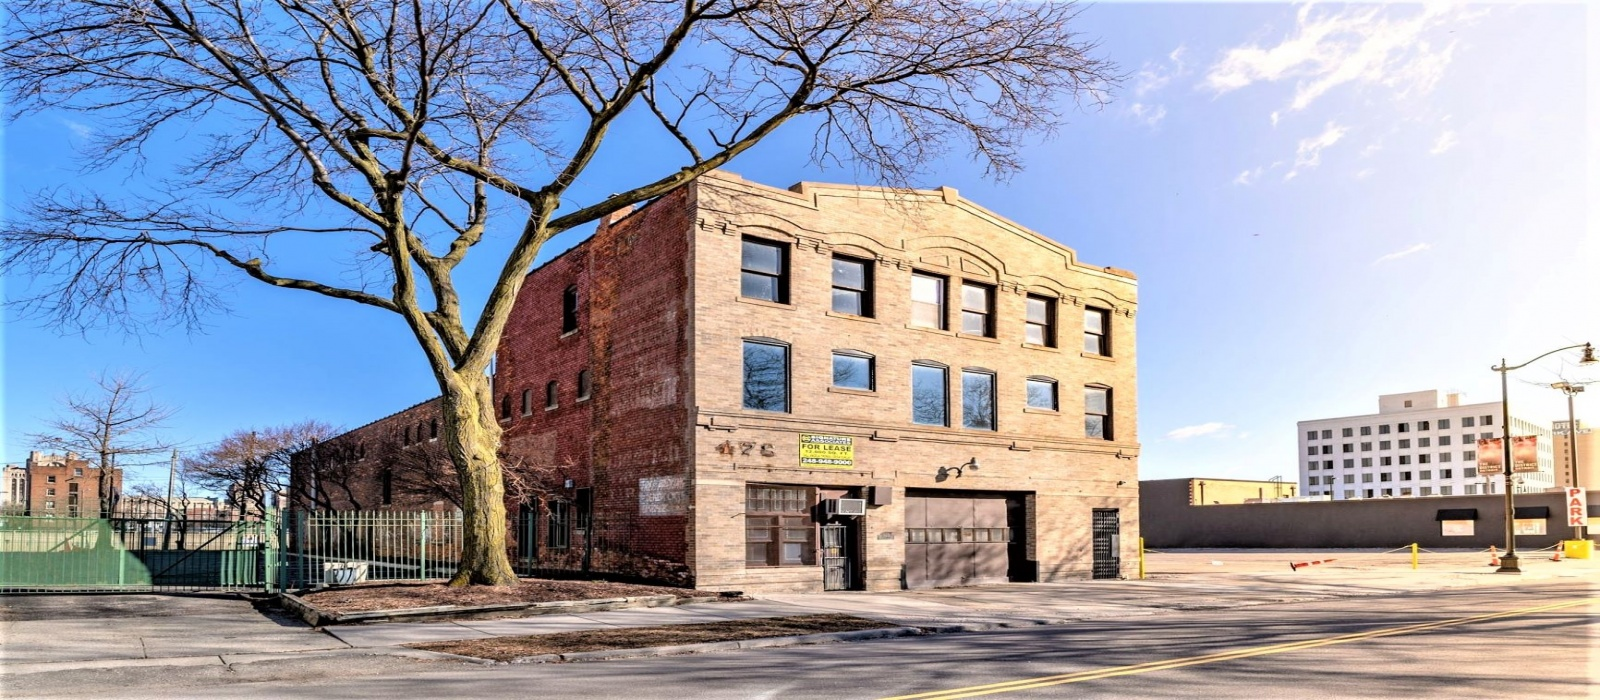 478 West Columbia, Detroit, Michigan 48201, ,Office,For Lease,478 West Columbia ,1042